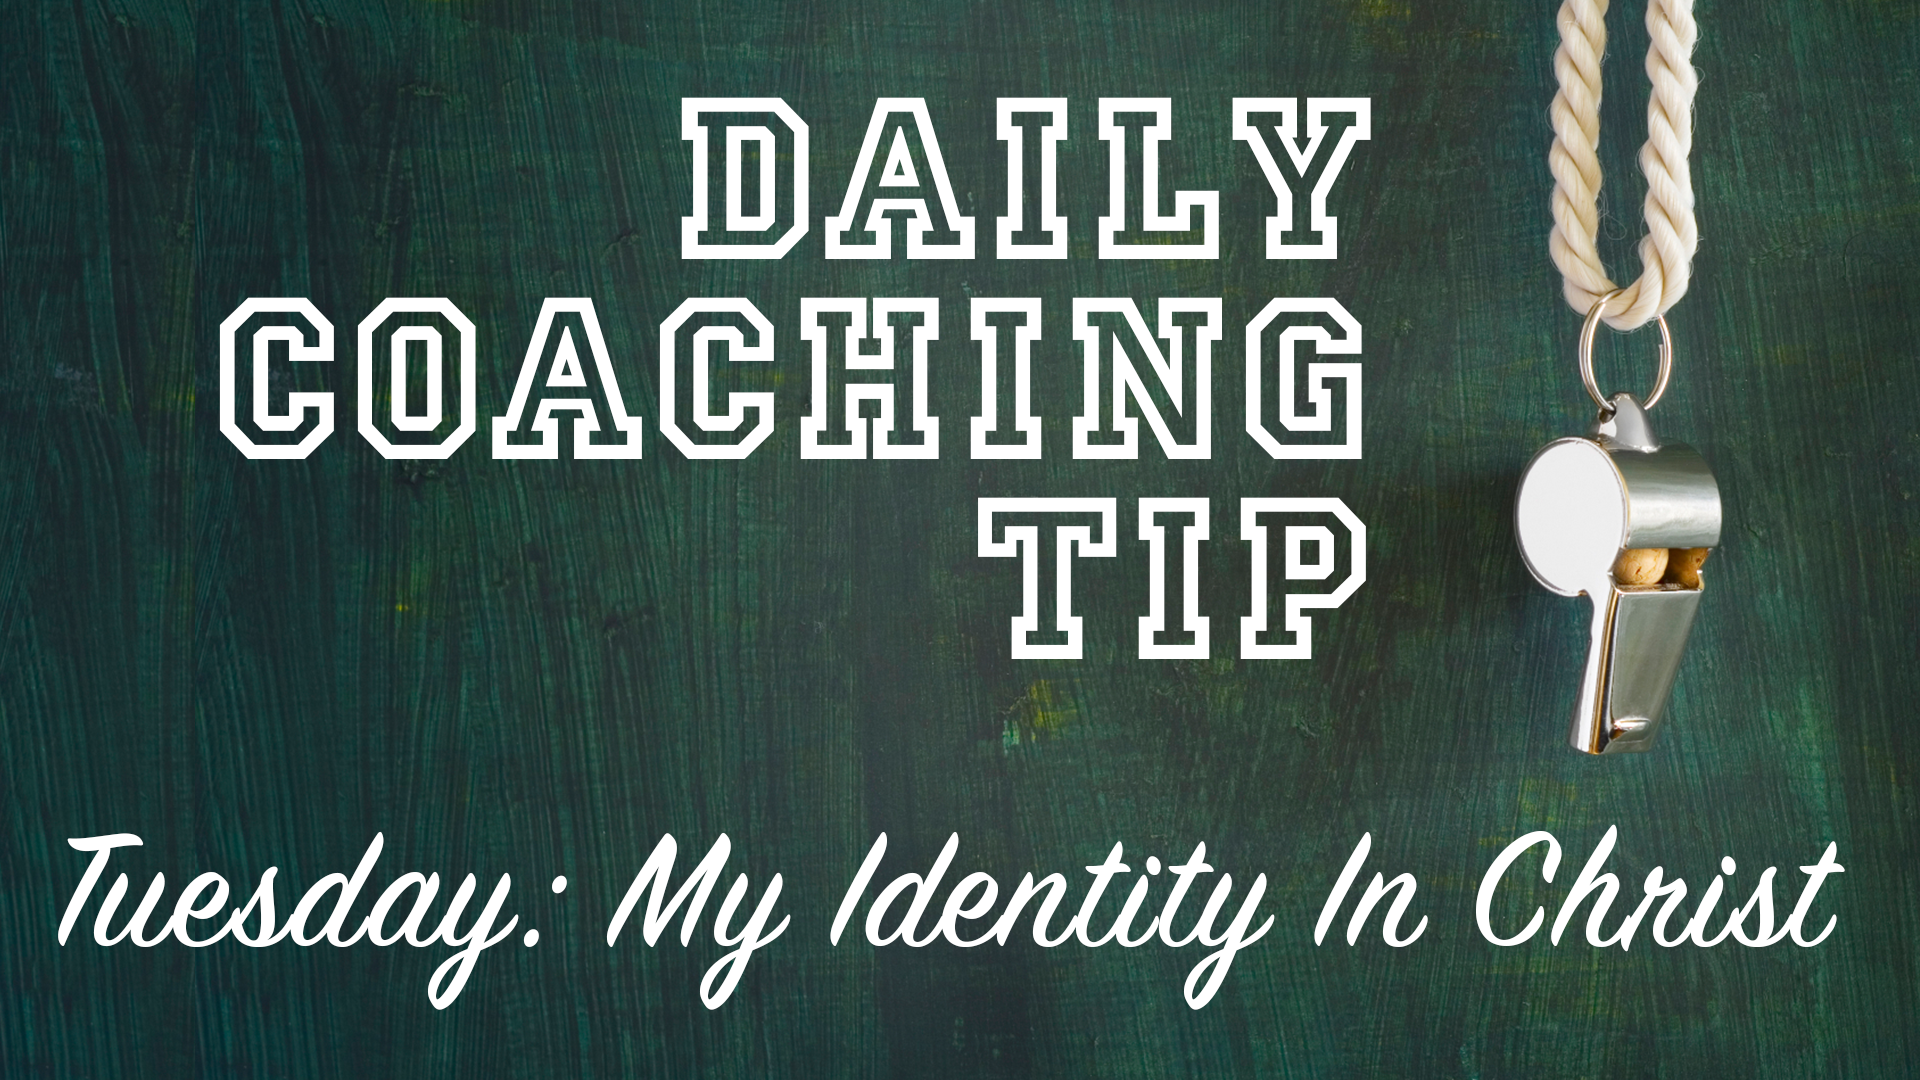 Daily Coaching Tip, Tuesday, April 19, 2016